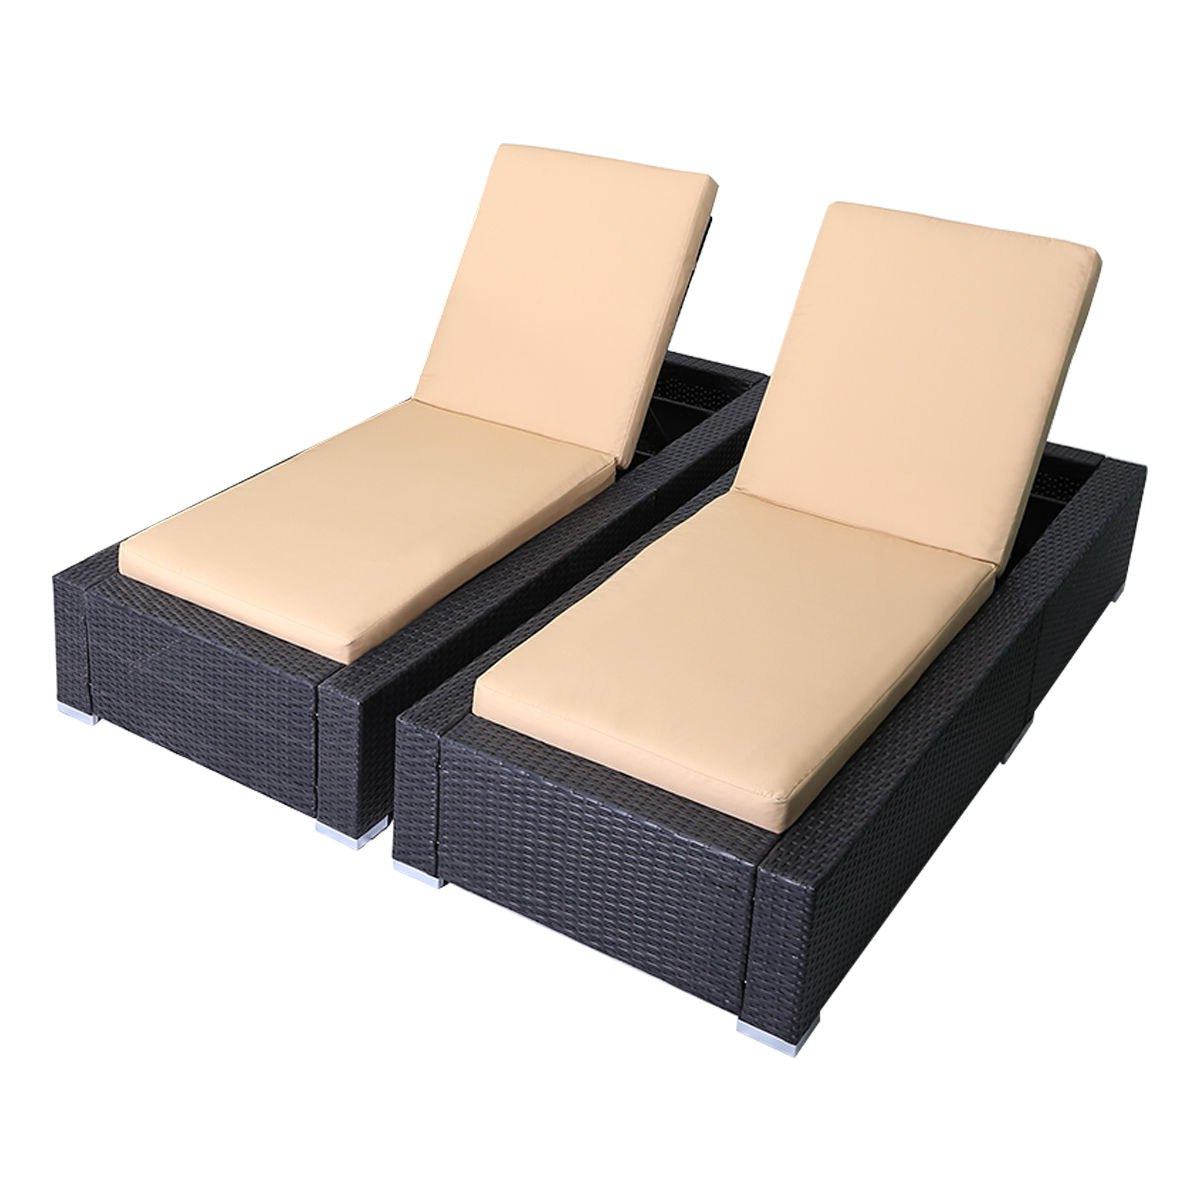 Rakuten Intended For Wicker Chaise Back Adjustable Patio Lounge Chairs With Wheels (View 24 of 25)